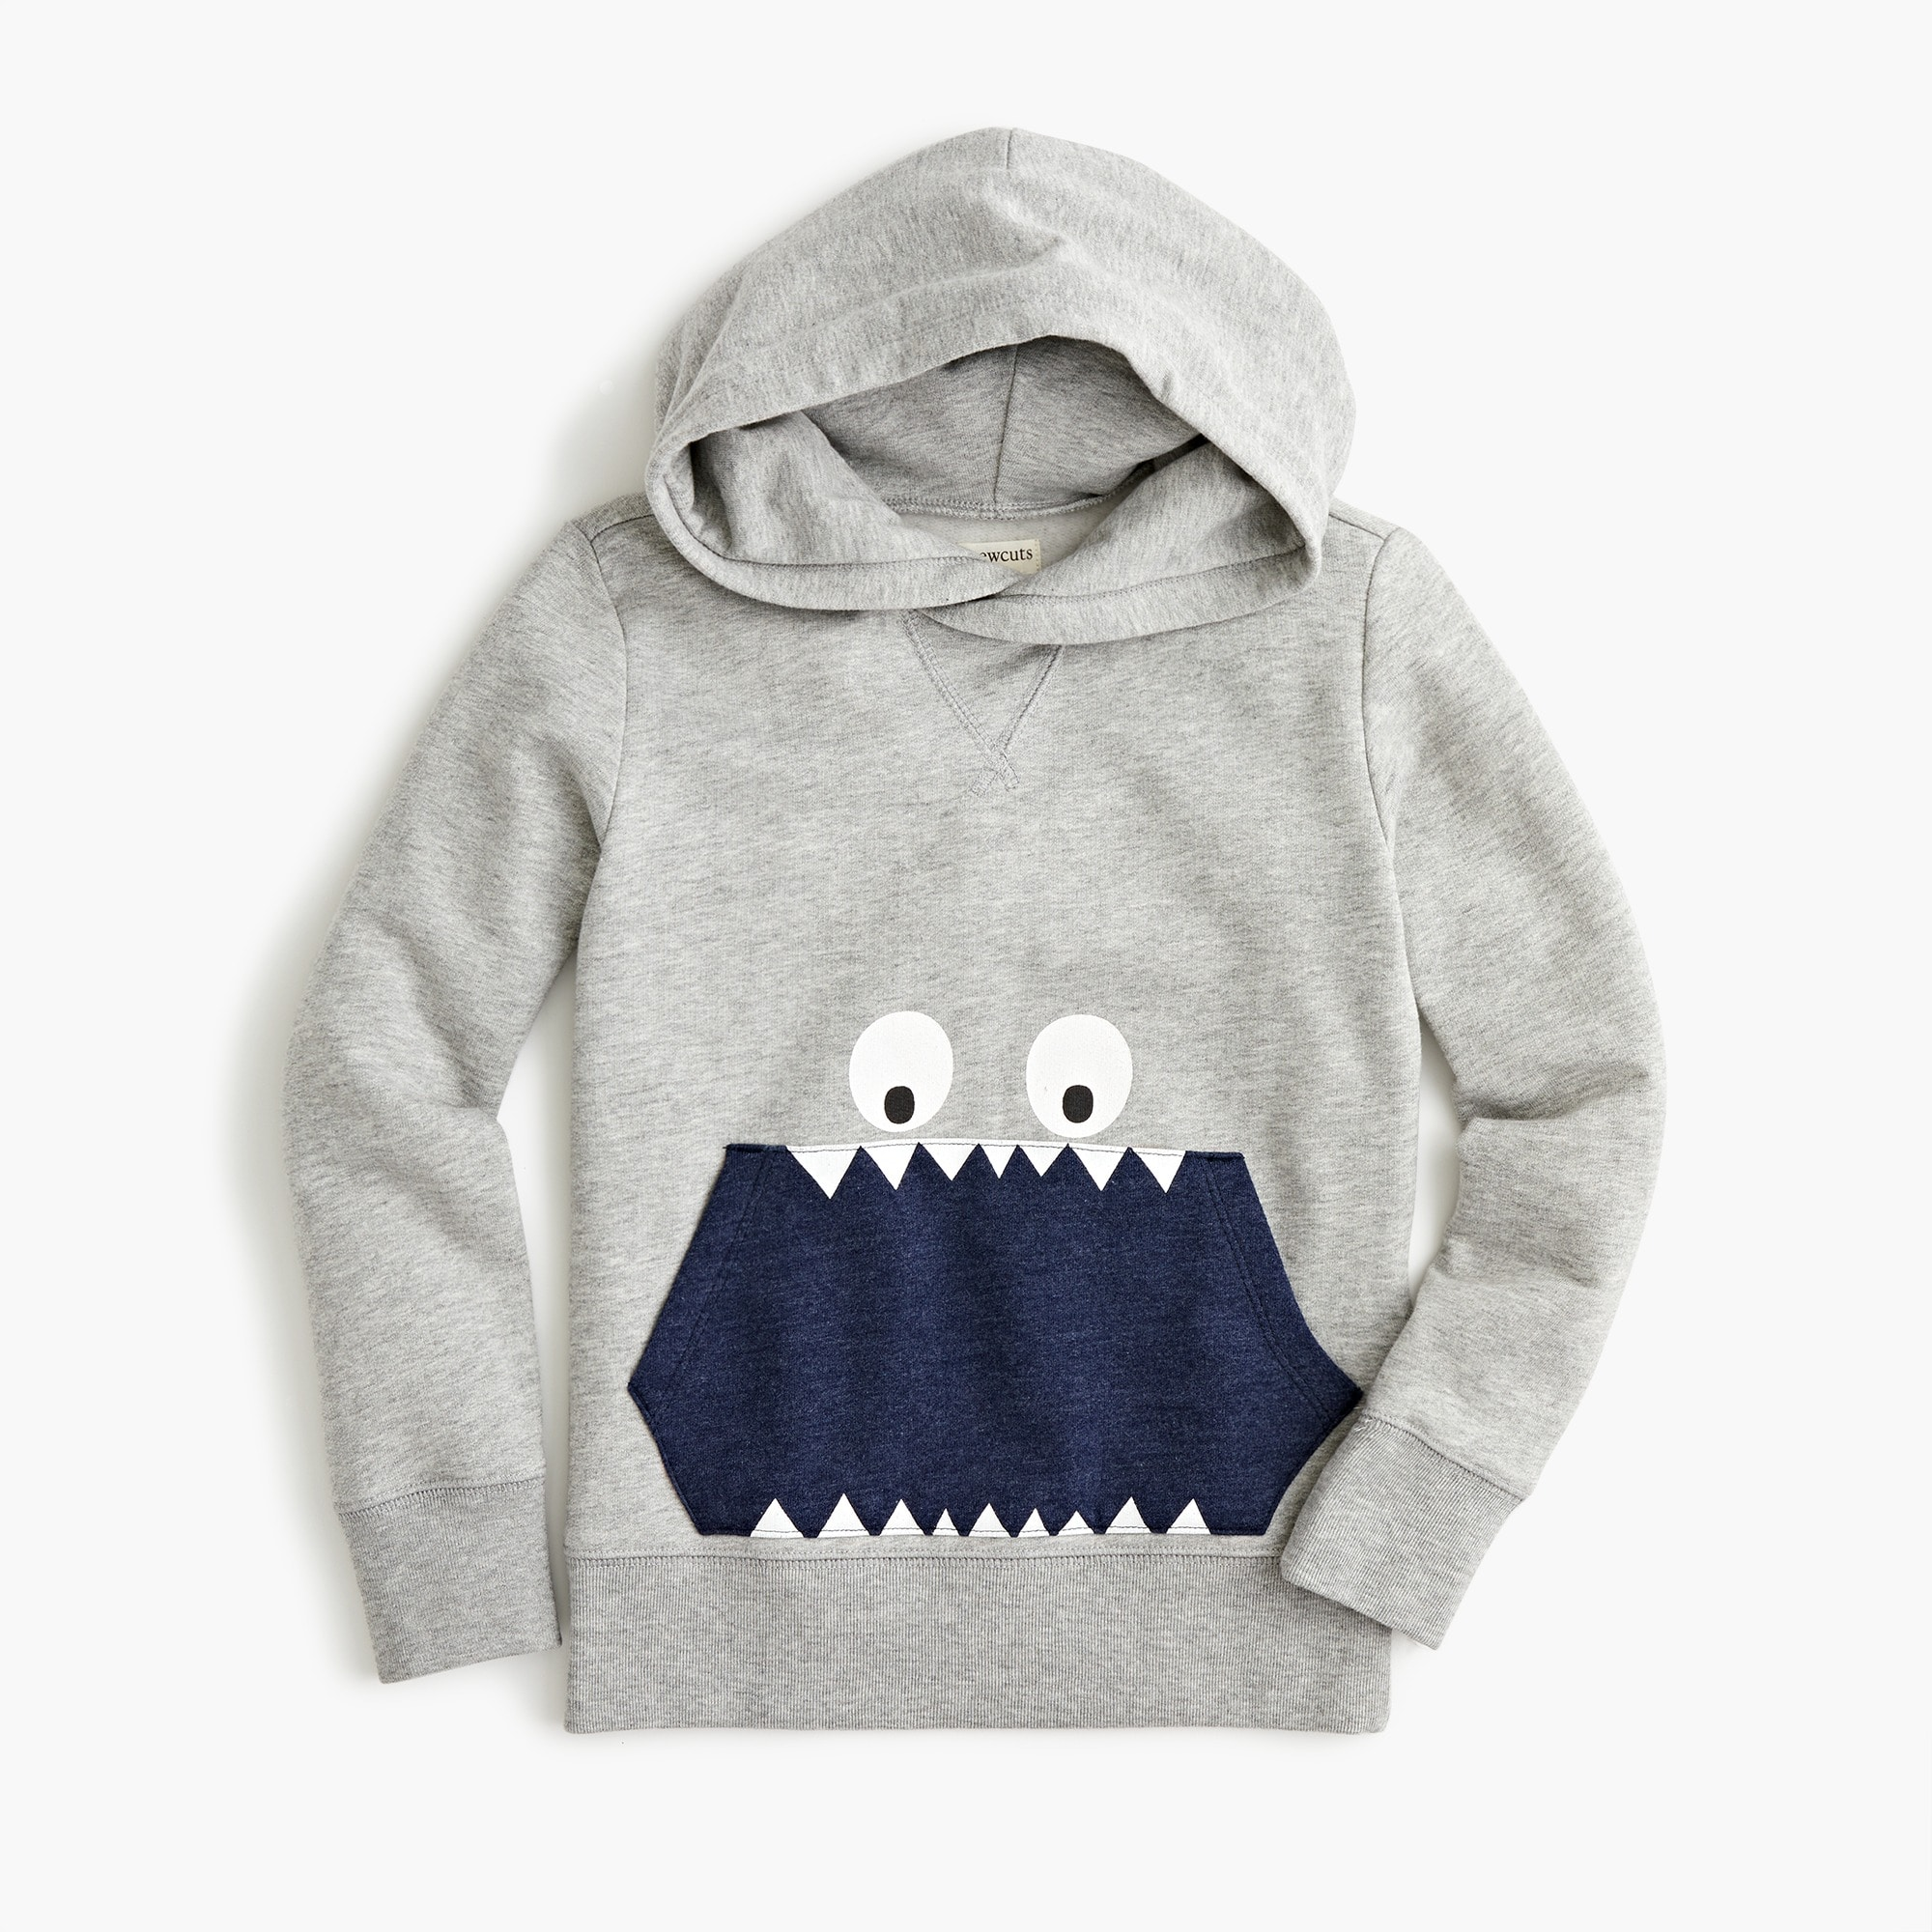 Max the Monster™ boys' hoodie sweatshirt